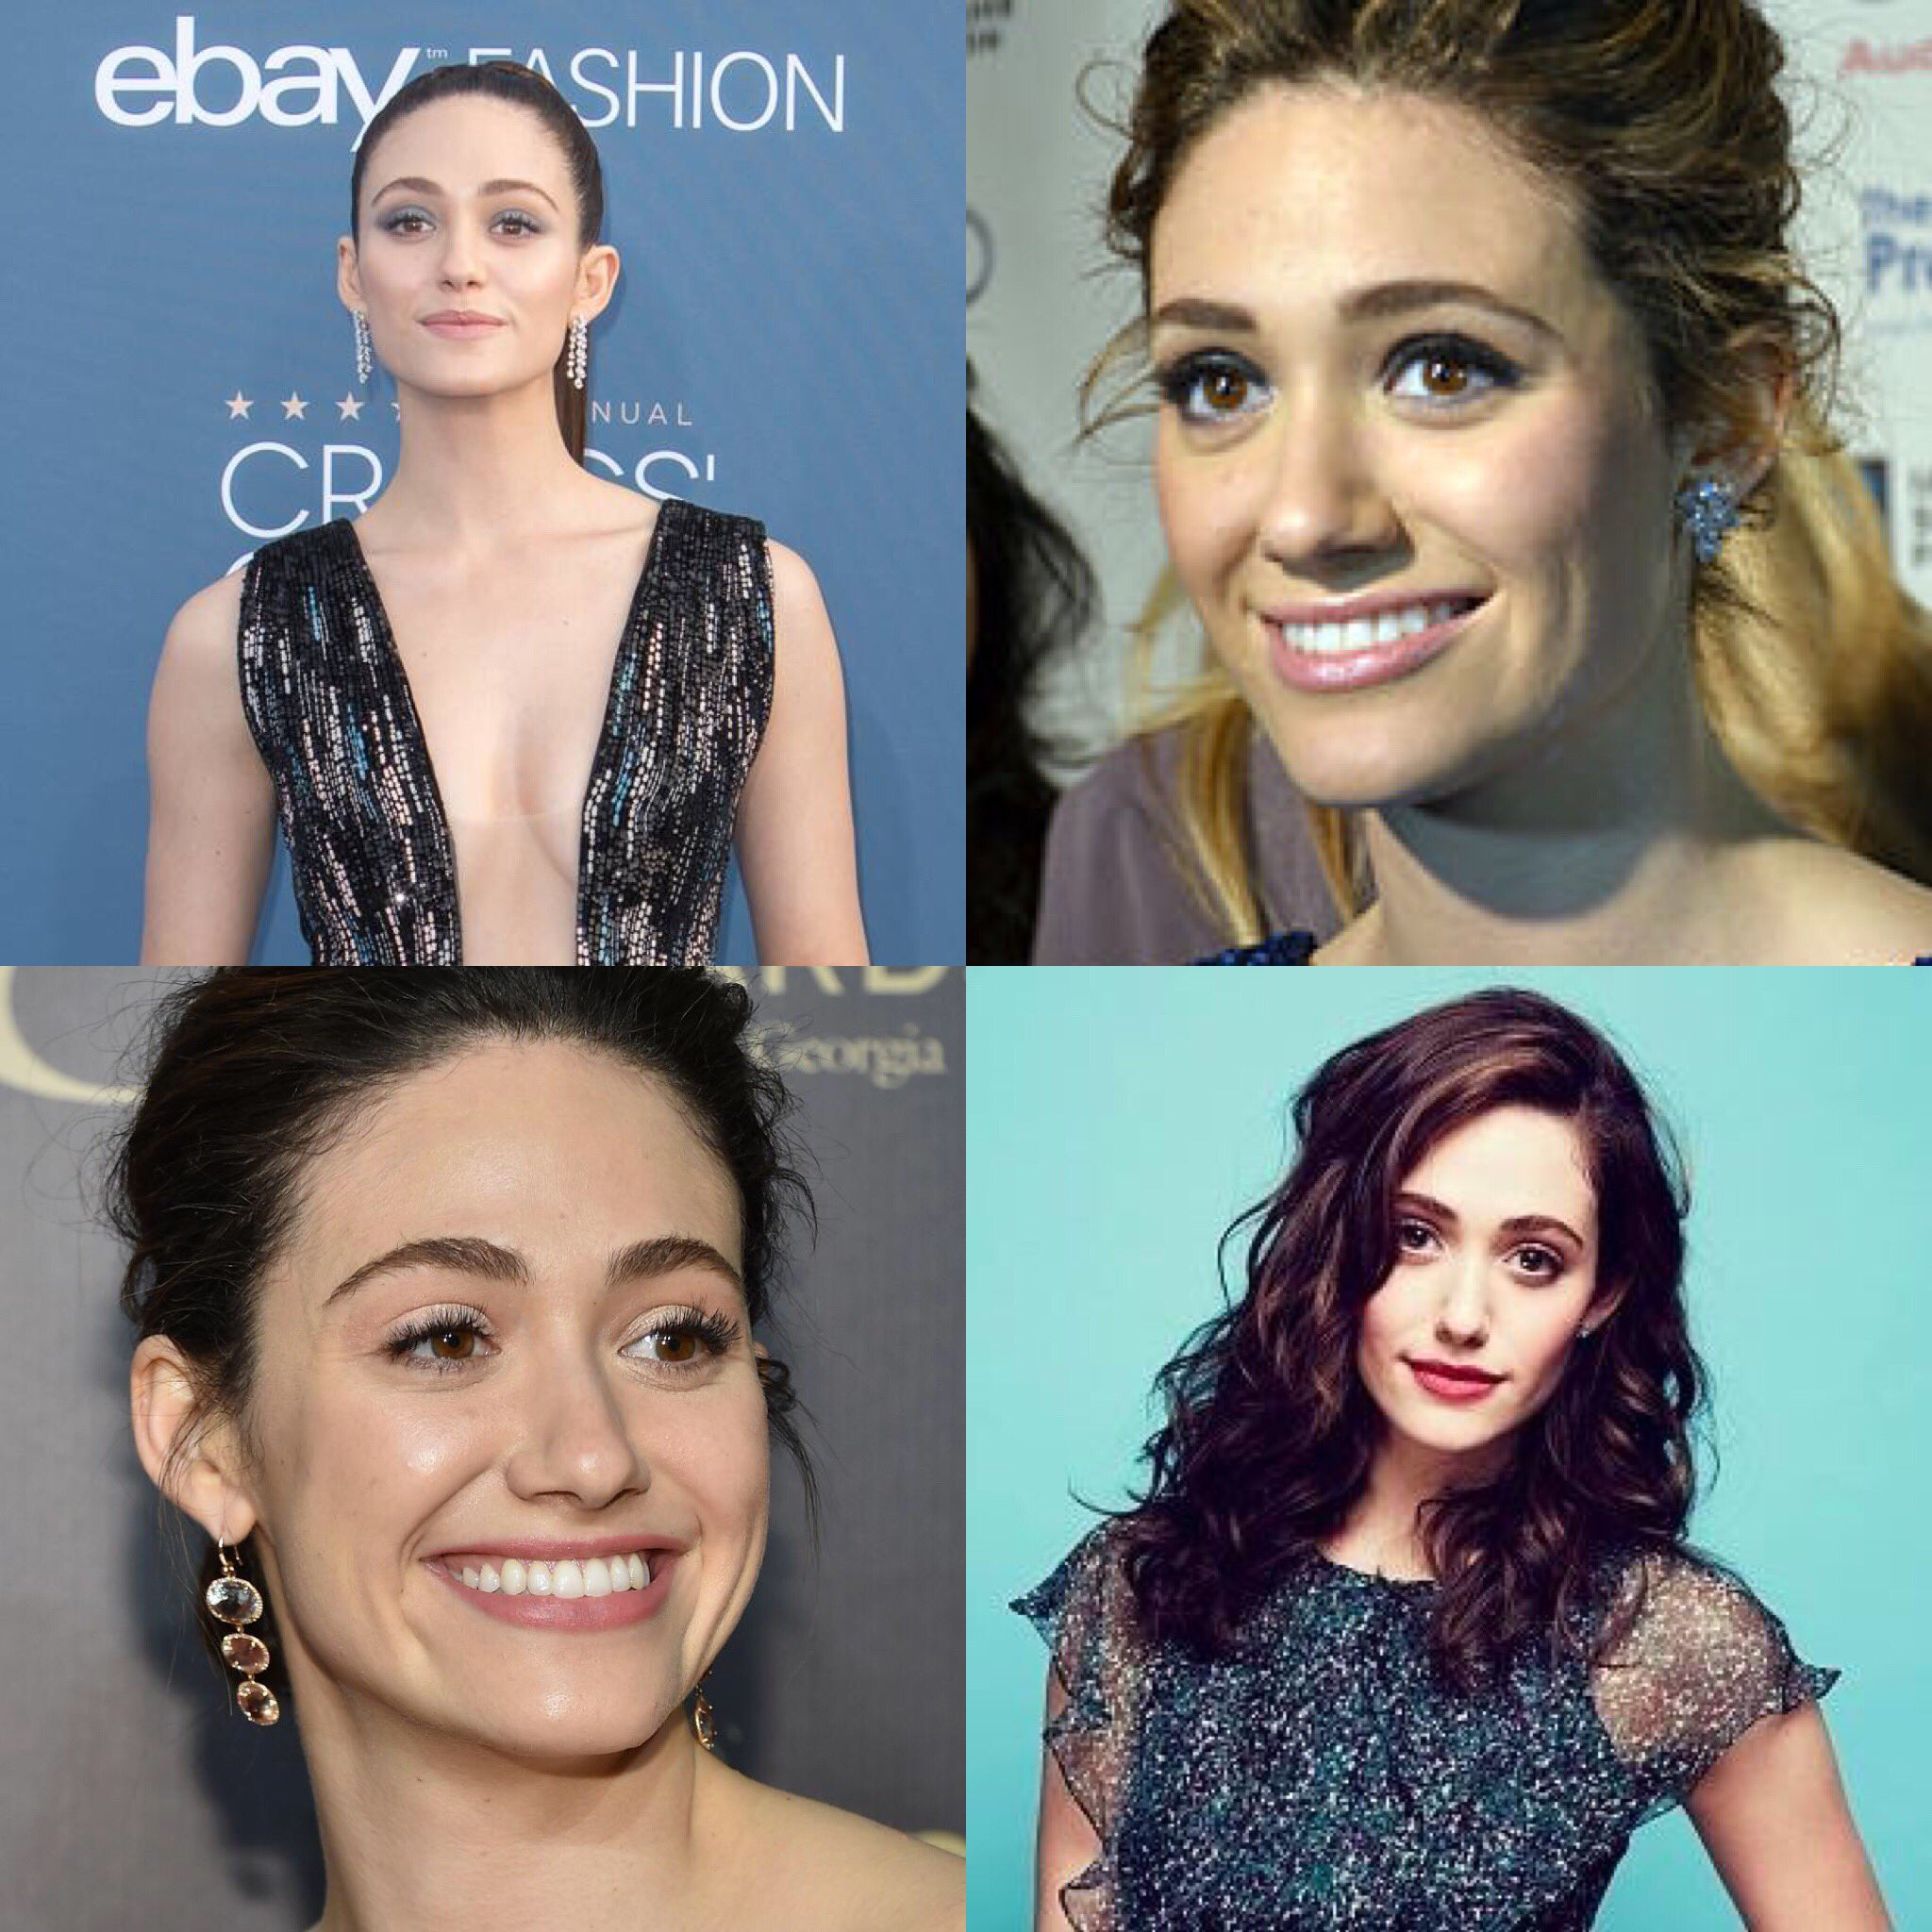 Happy 30 birthday to Emmy Rossum. Hope that she has a wonderful birthday.